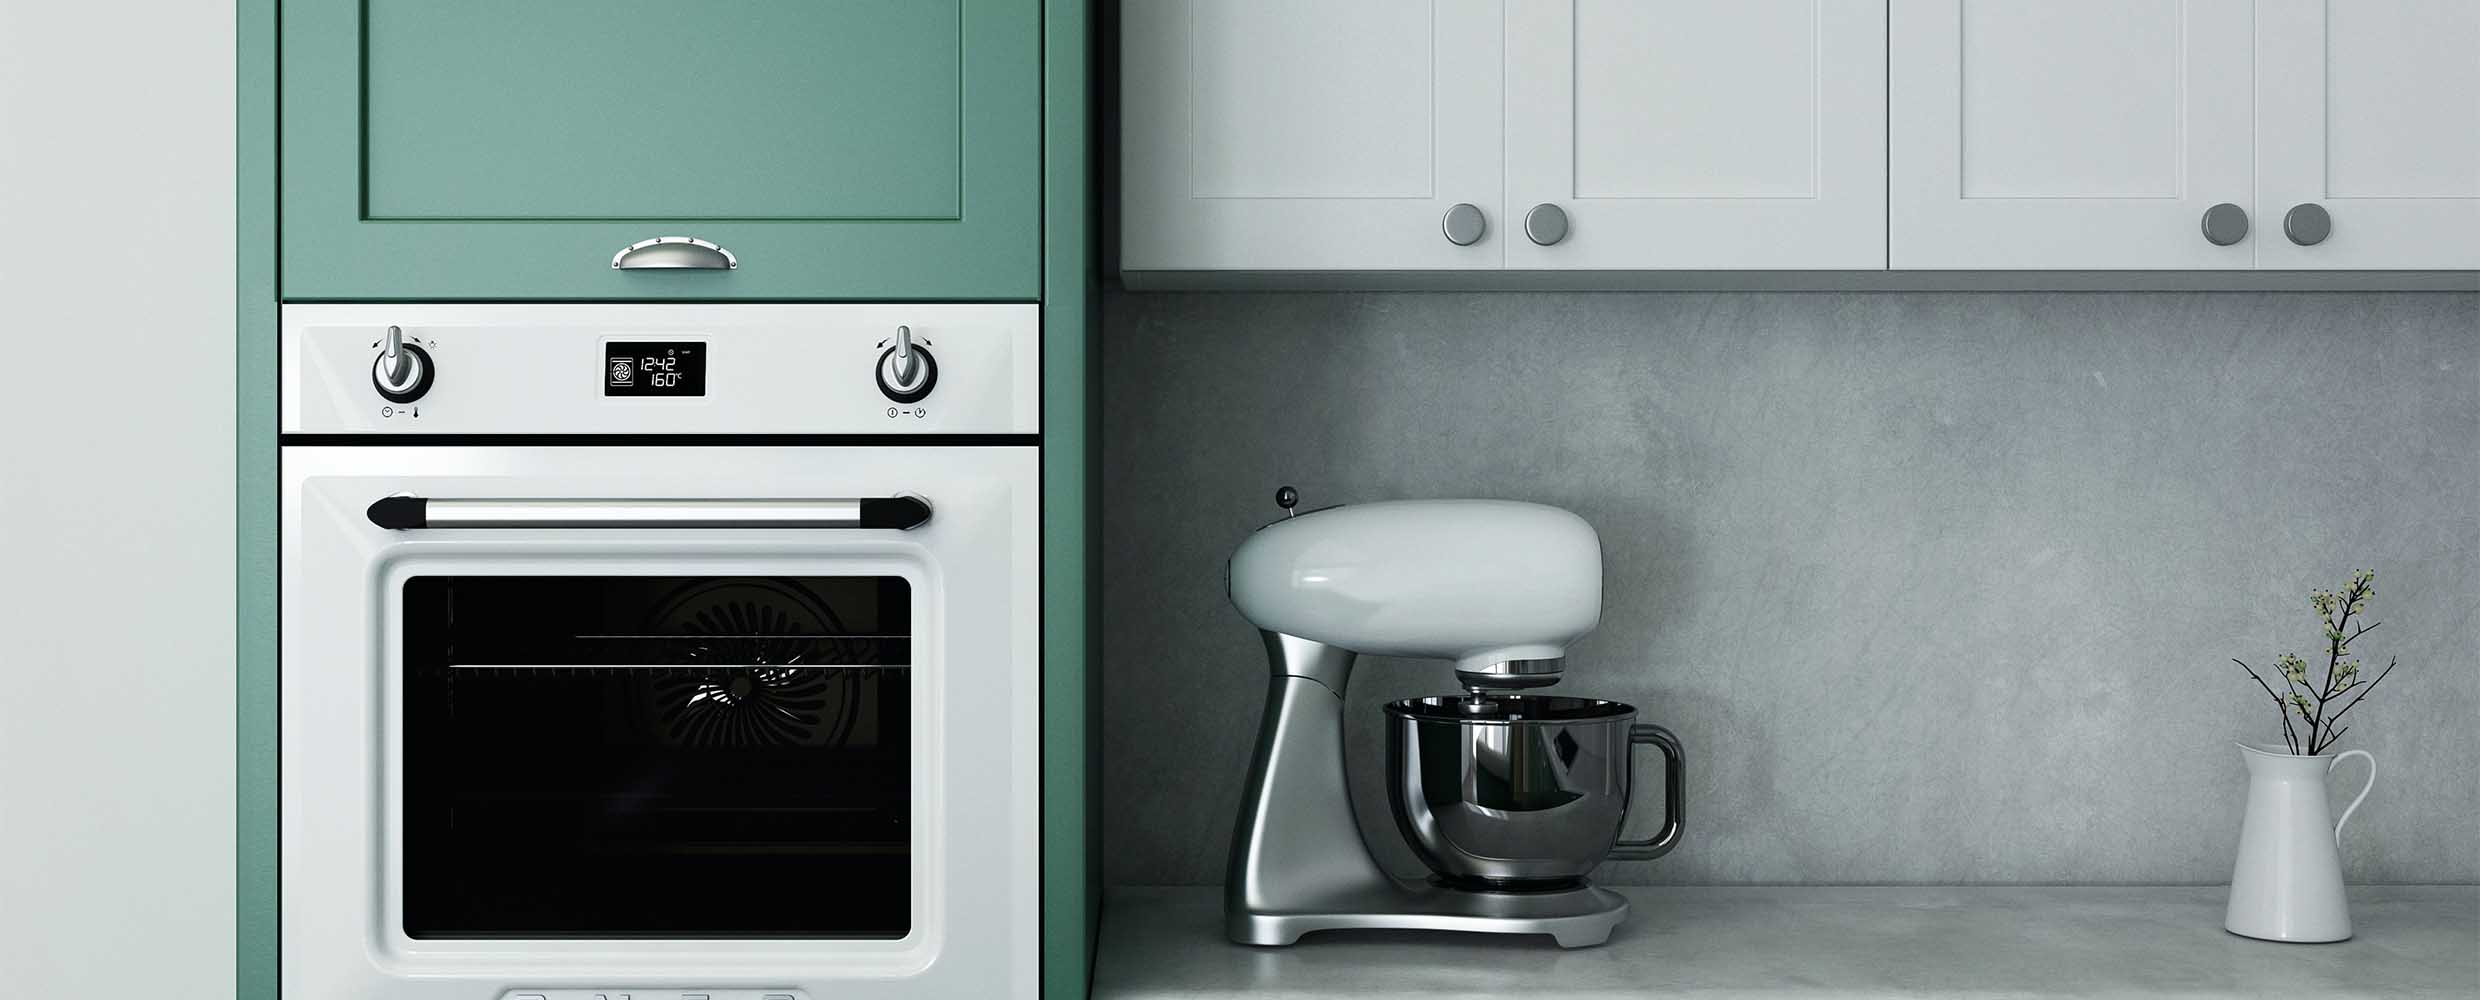 HOME-LIVING - SAVE-MONEY-ON-YOUR-ELECTRICITY-BILLS.-KITCHEN-APPLIANCES-PIC